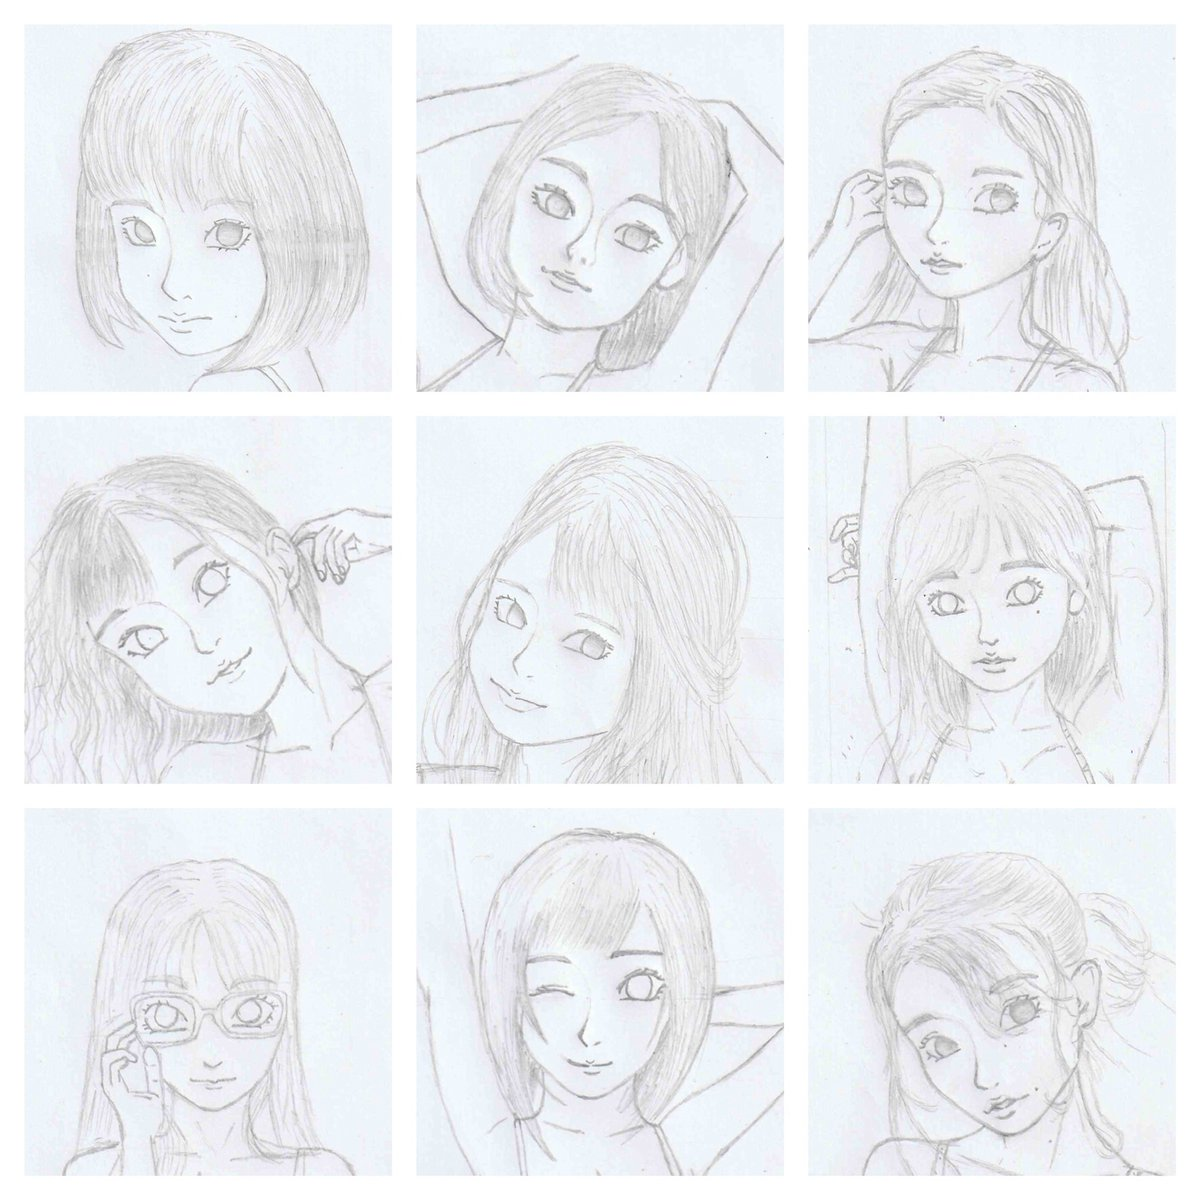 I made this for that #faceyourart thing.  #anime #AnimeArt #ArtistOnTwitter #animeartist #artstyle #ecchi #artist #Sketching #sketch #animestyle #animesketch #animedrawing #お絵かきpic.twitter.com/UXUVyvr5zq